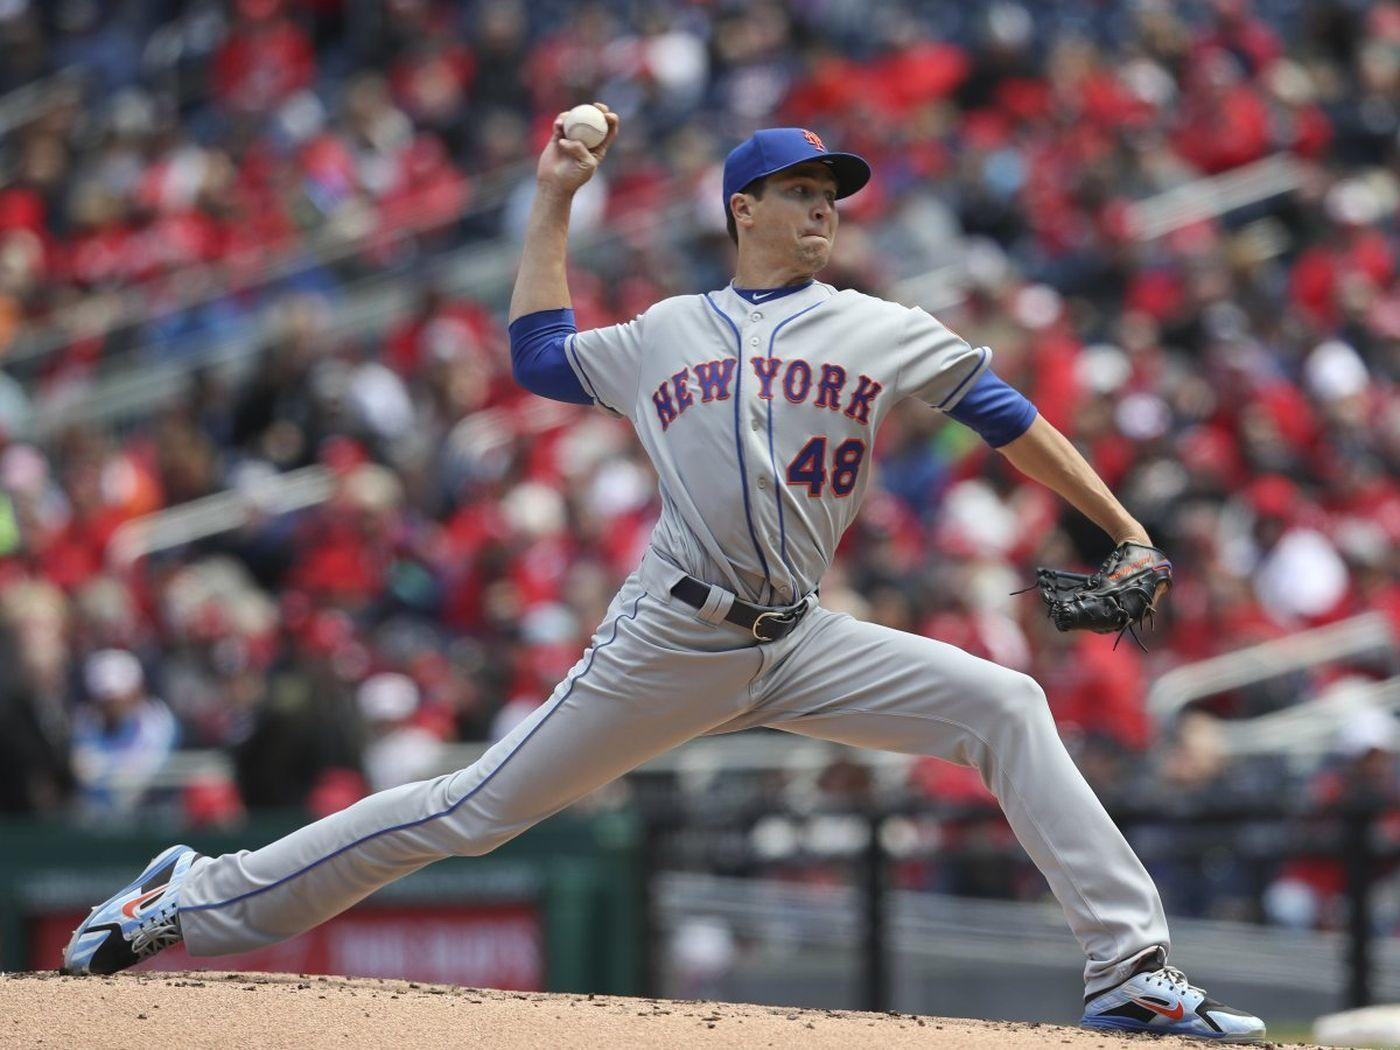 Mets' Jacob deGrom finds way through difficult sixth inning: 'He